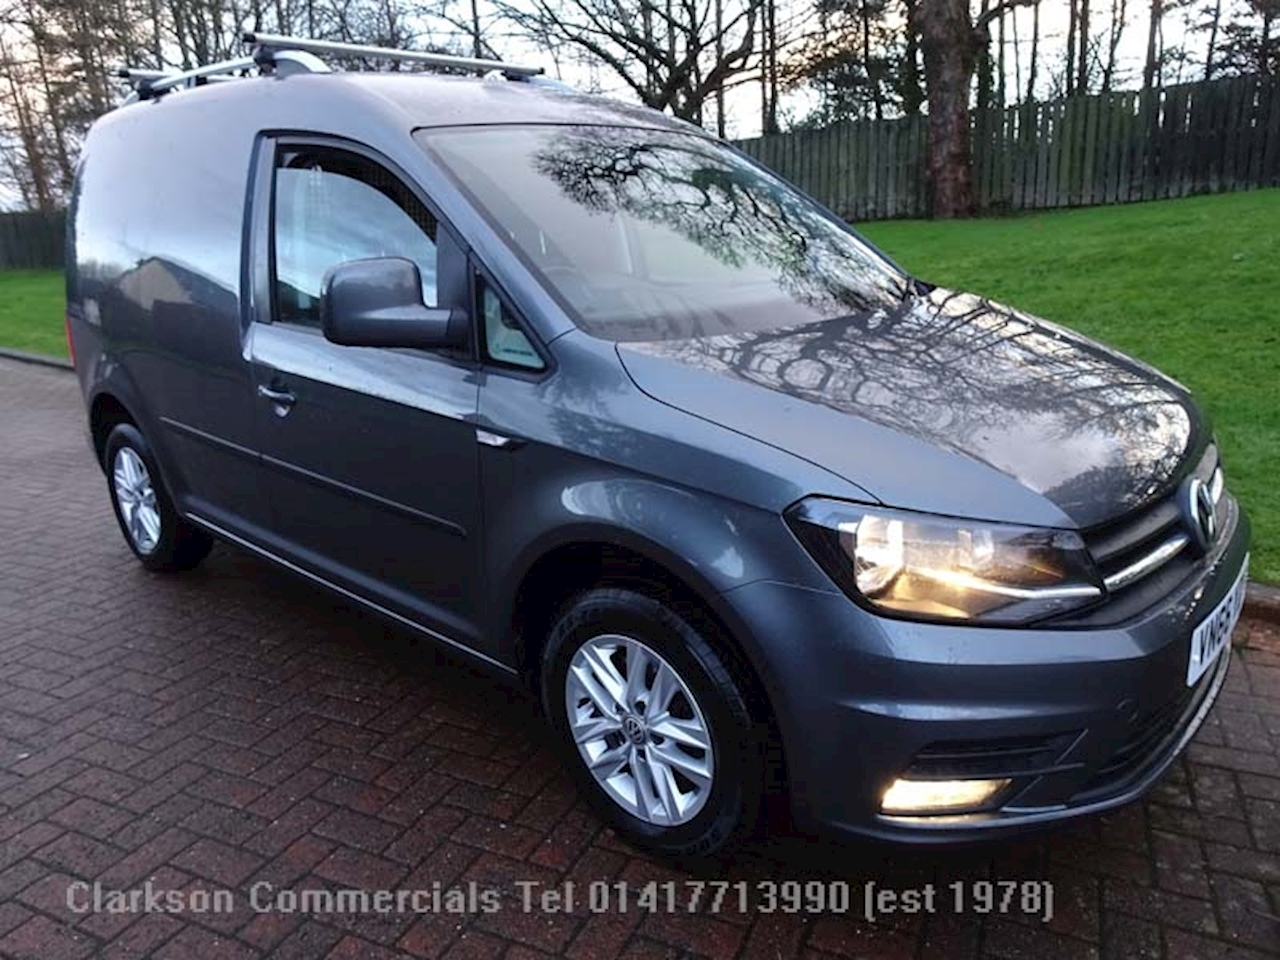 Volkswagen Caddy C20 1.6TDi Highline 1.6 5dr Panel Van Manual Diesel